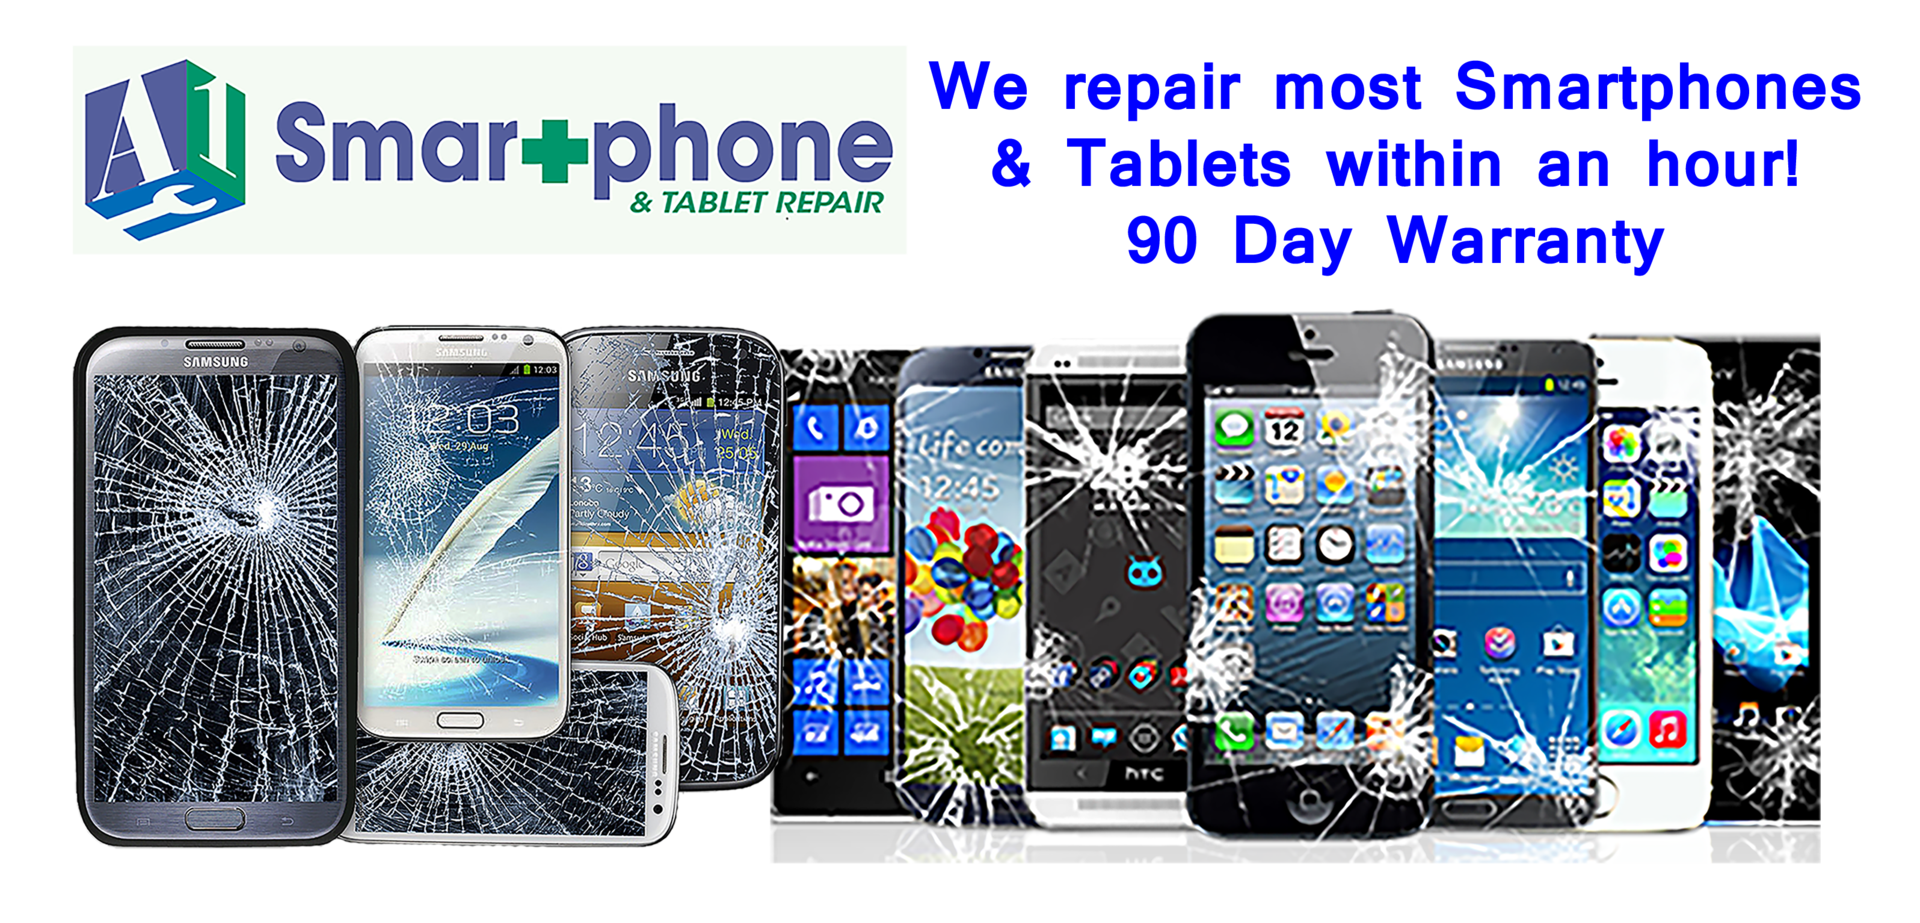 A 1 smartphone tablet repair in georgetown tx check out a 1 smartphone tablet repair on yelp solutioingenieria Gallery